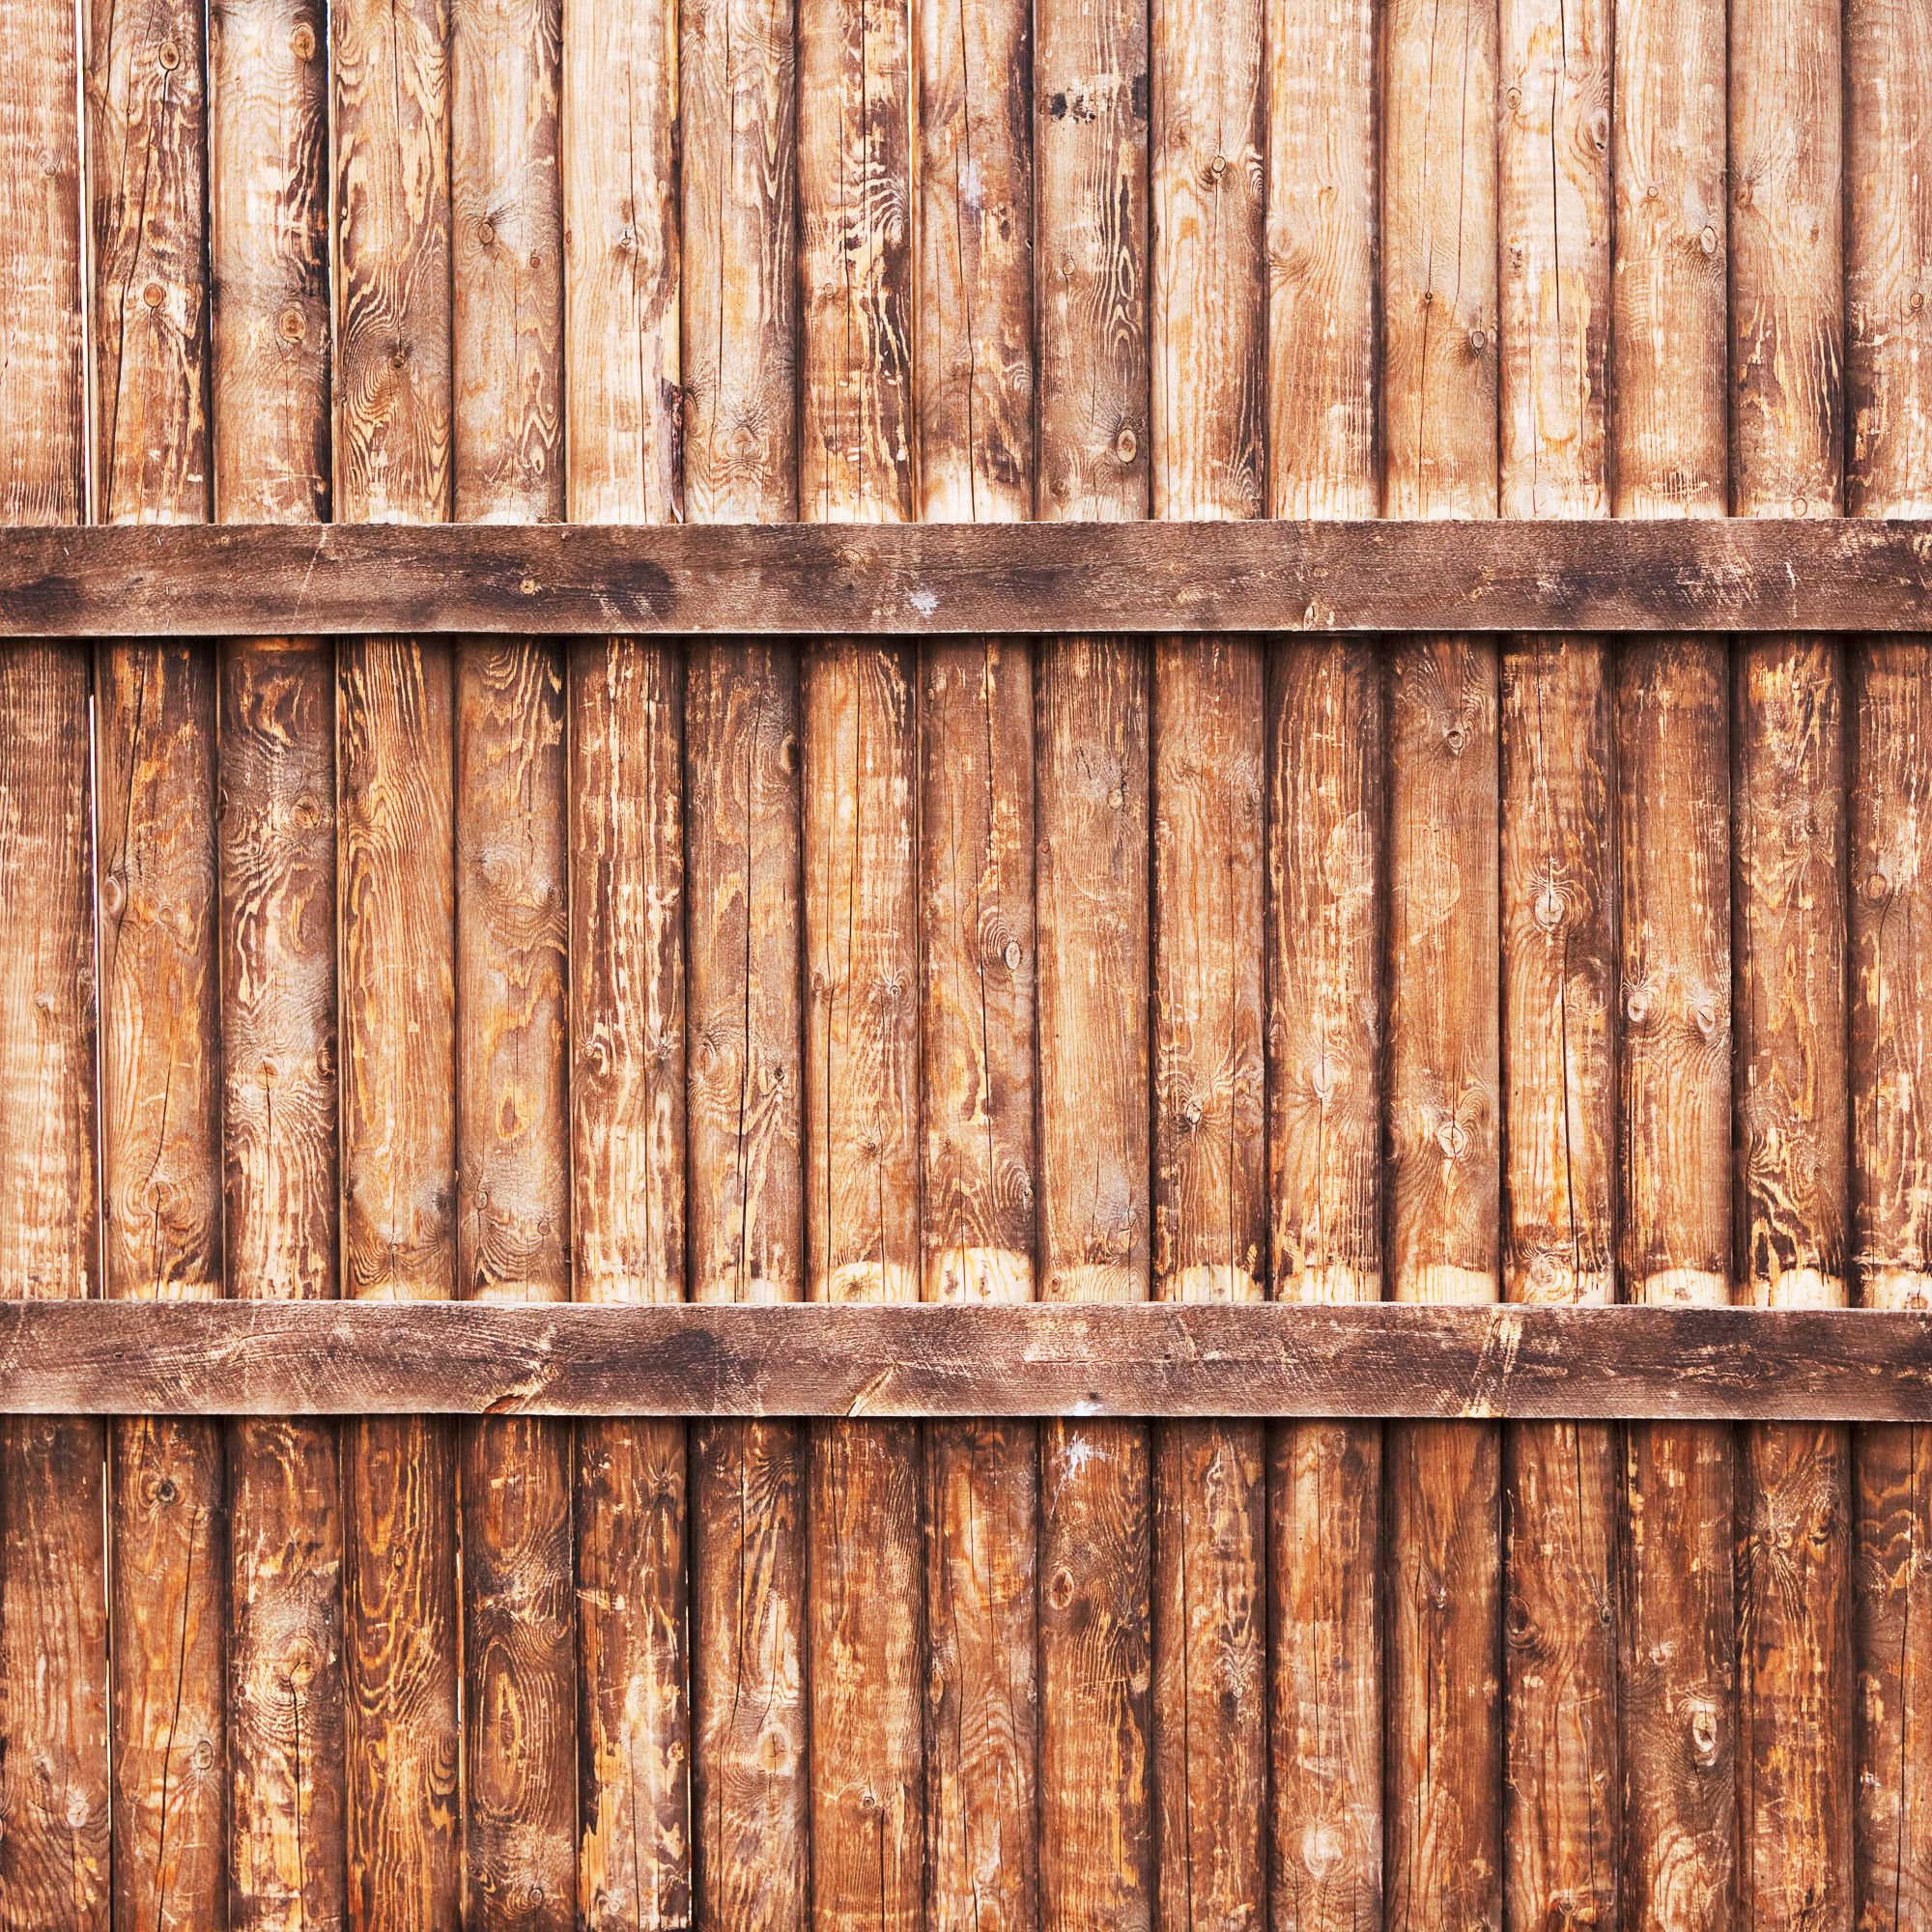 Wooden Background, Abstract, Surface, Pine, Plank, HQ Photo